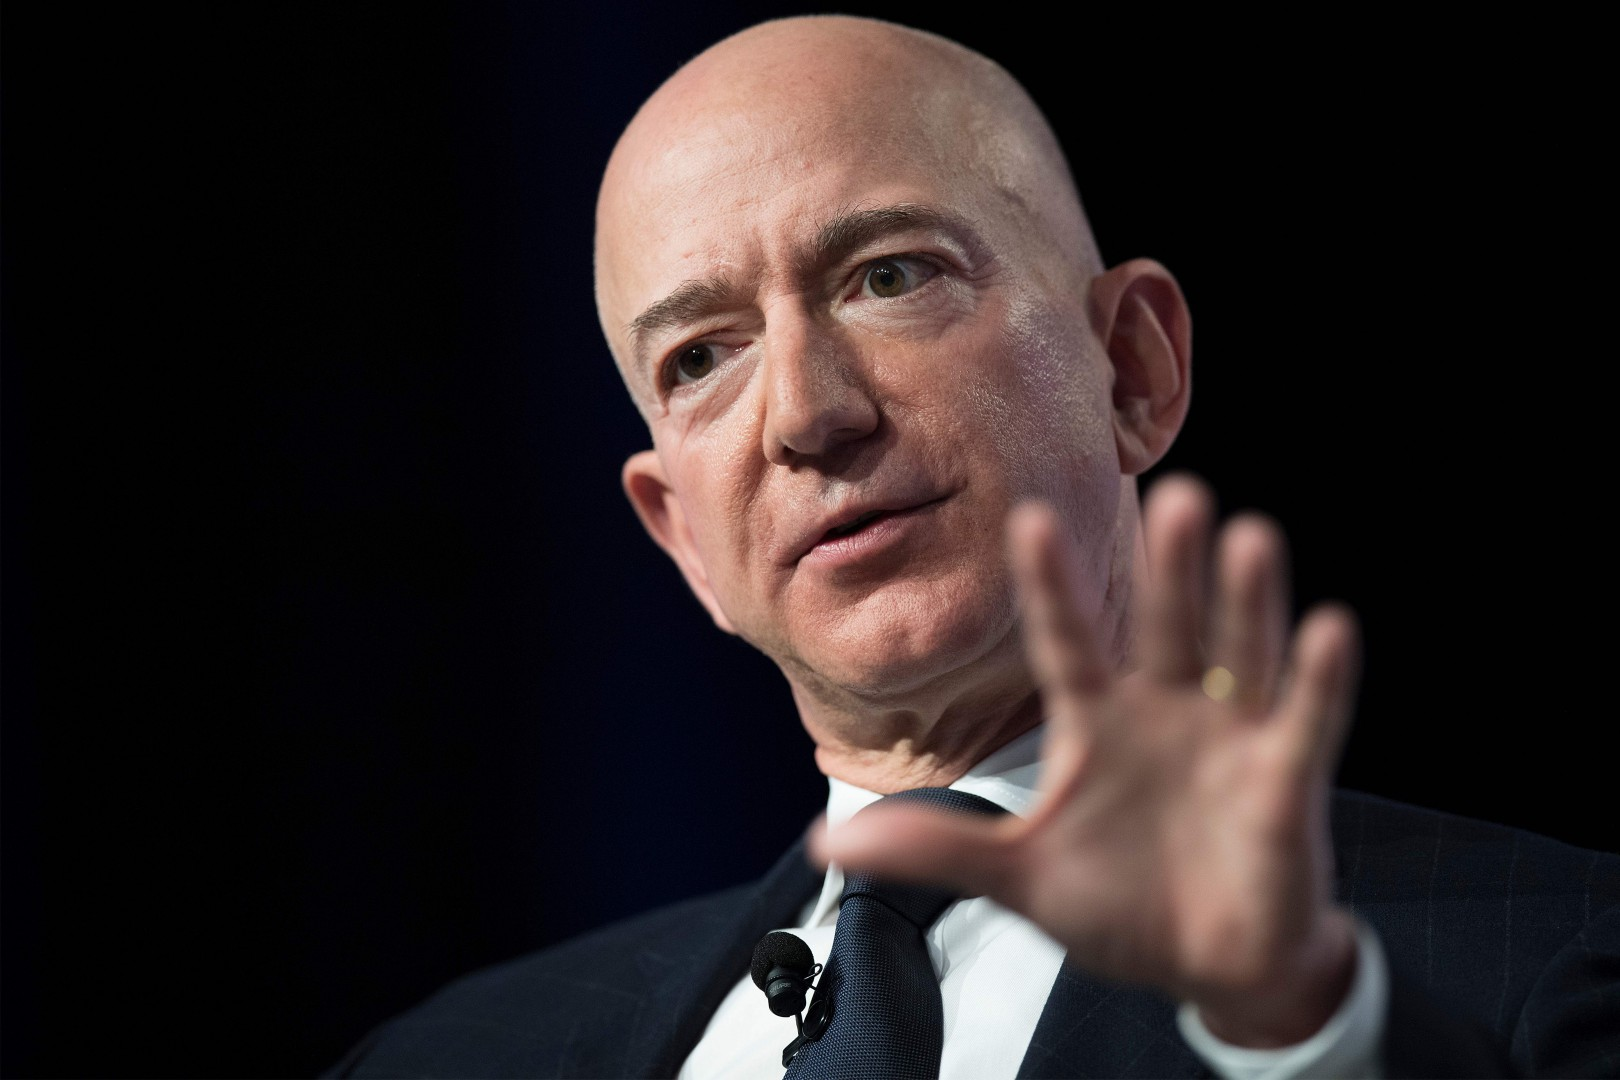 """(FILES) In this file photo taken on September 19, 2018 Amazon and Blue Origin founder Jeff Bezos provides the keynote address at the Air Force Association's Annual Air, Space & Cyber Conference in Oxen Hill, Maryland. - Amazon founder Jeff Bezos, rated the world's wealthiest person, announced on January 9, 2019 on Twitter that he and his wife Mackenzie Bezos were divorcing after a long separation. """"We want to make people aware of a development in our lives,"""" Jeff Bezos, 54, and MacKenzie Bezos, 48, said in joint statement posted to Bezos' Twitter feed. (Photo by Jim WATSON / AFP)"""